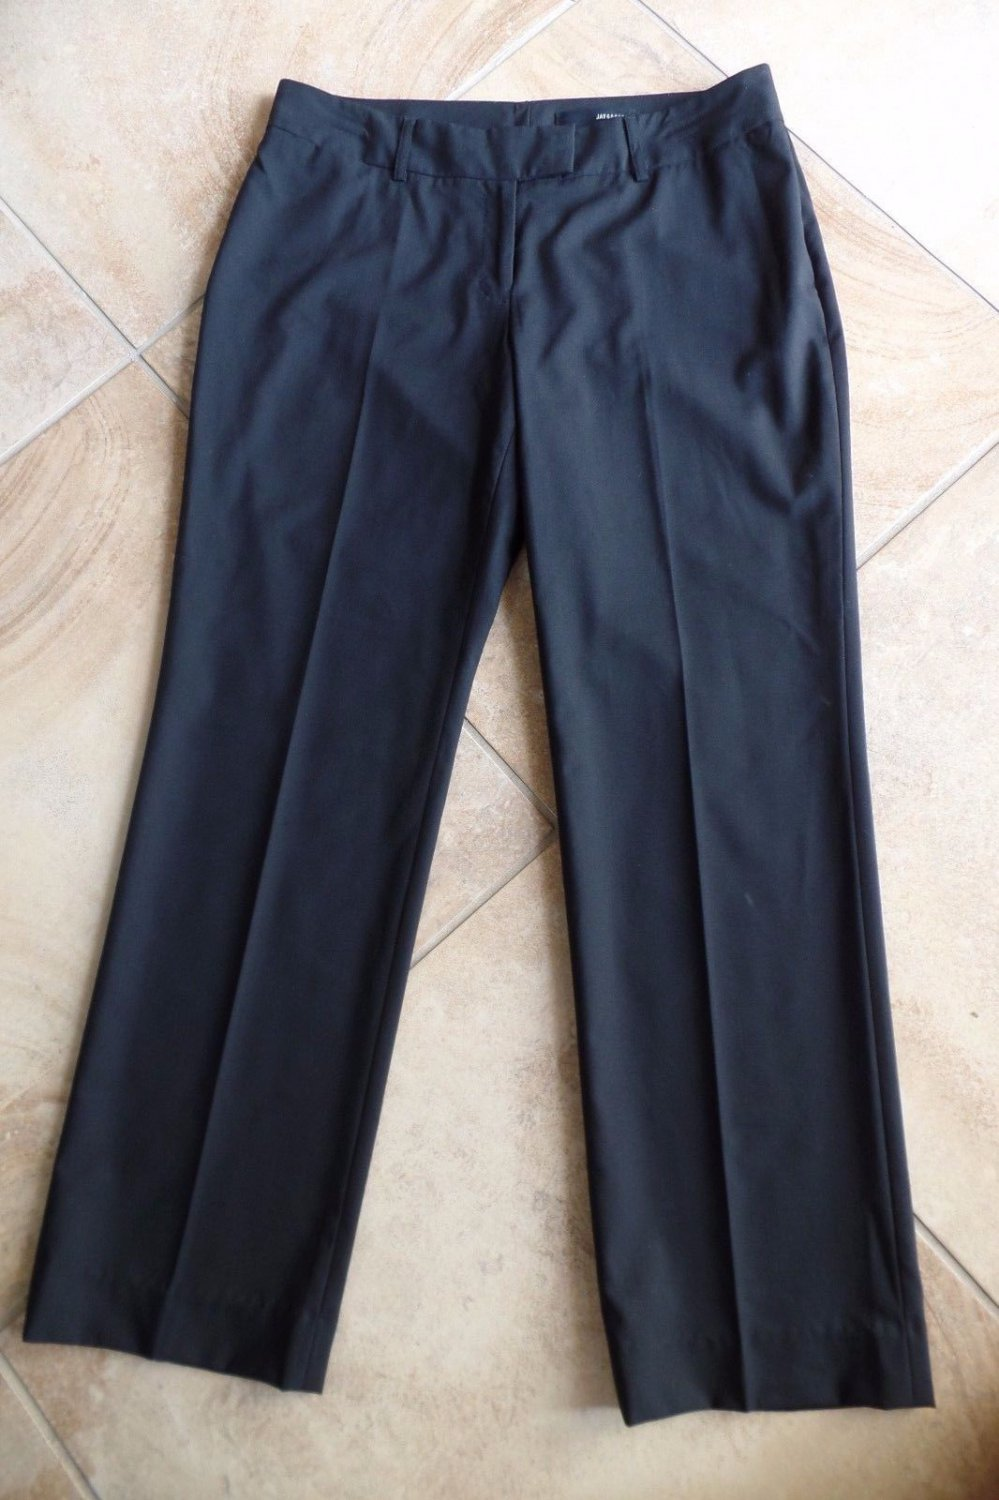 Jay Godfrey for Cintas Black Wool  Blend Hospitality Uniform Dress Pant 10